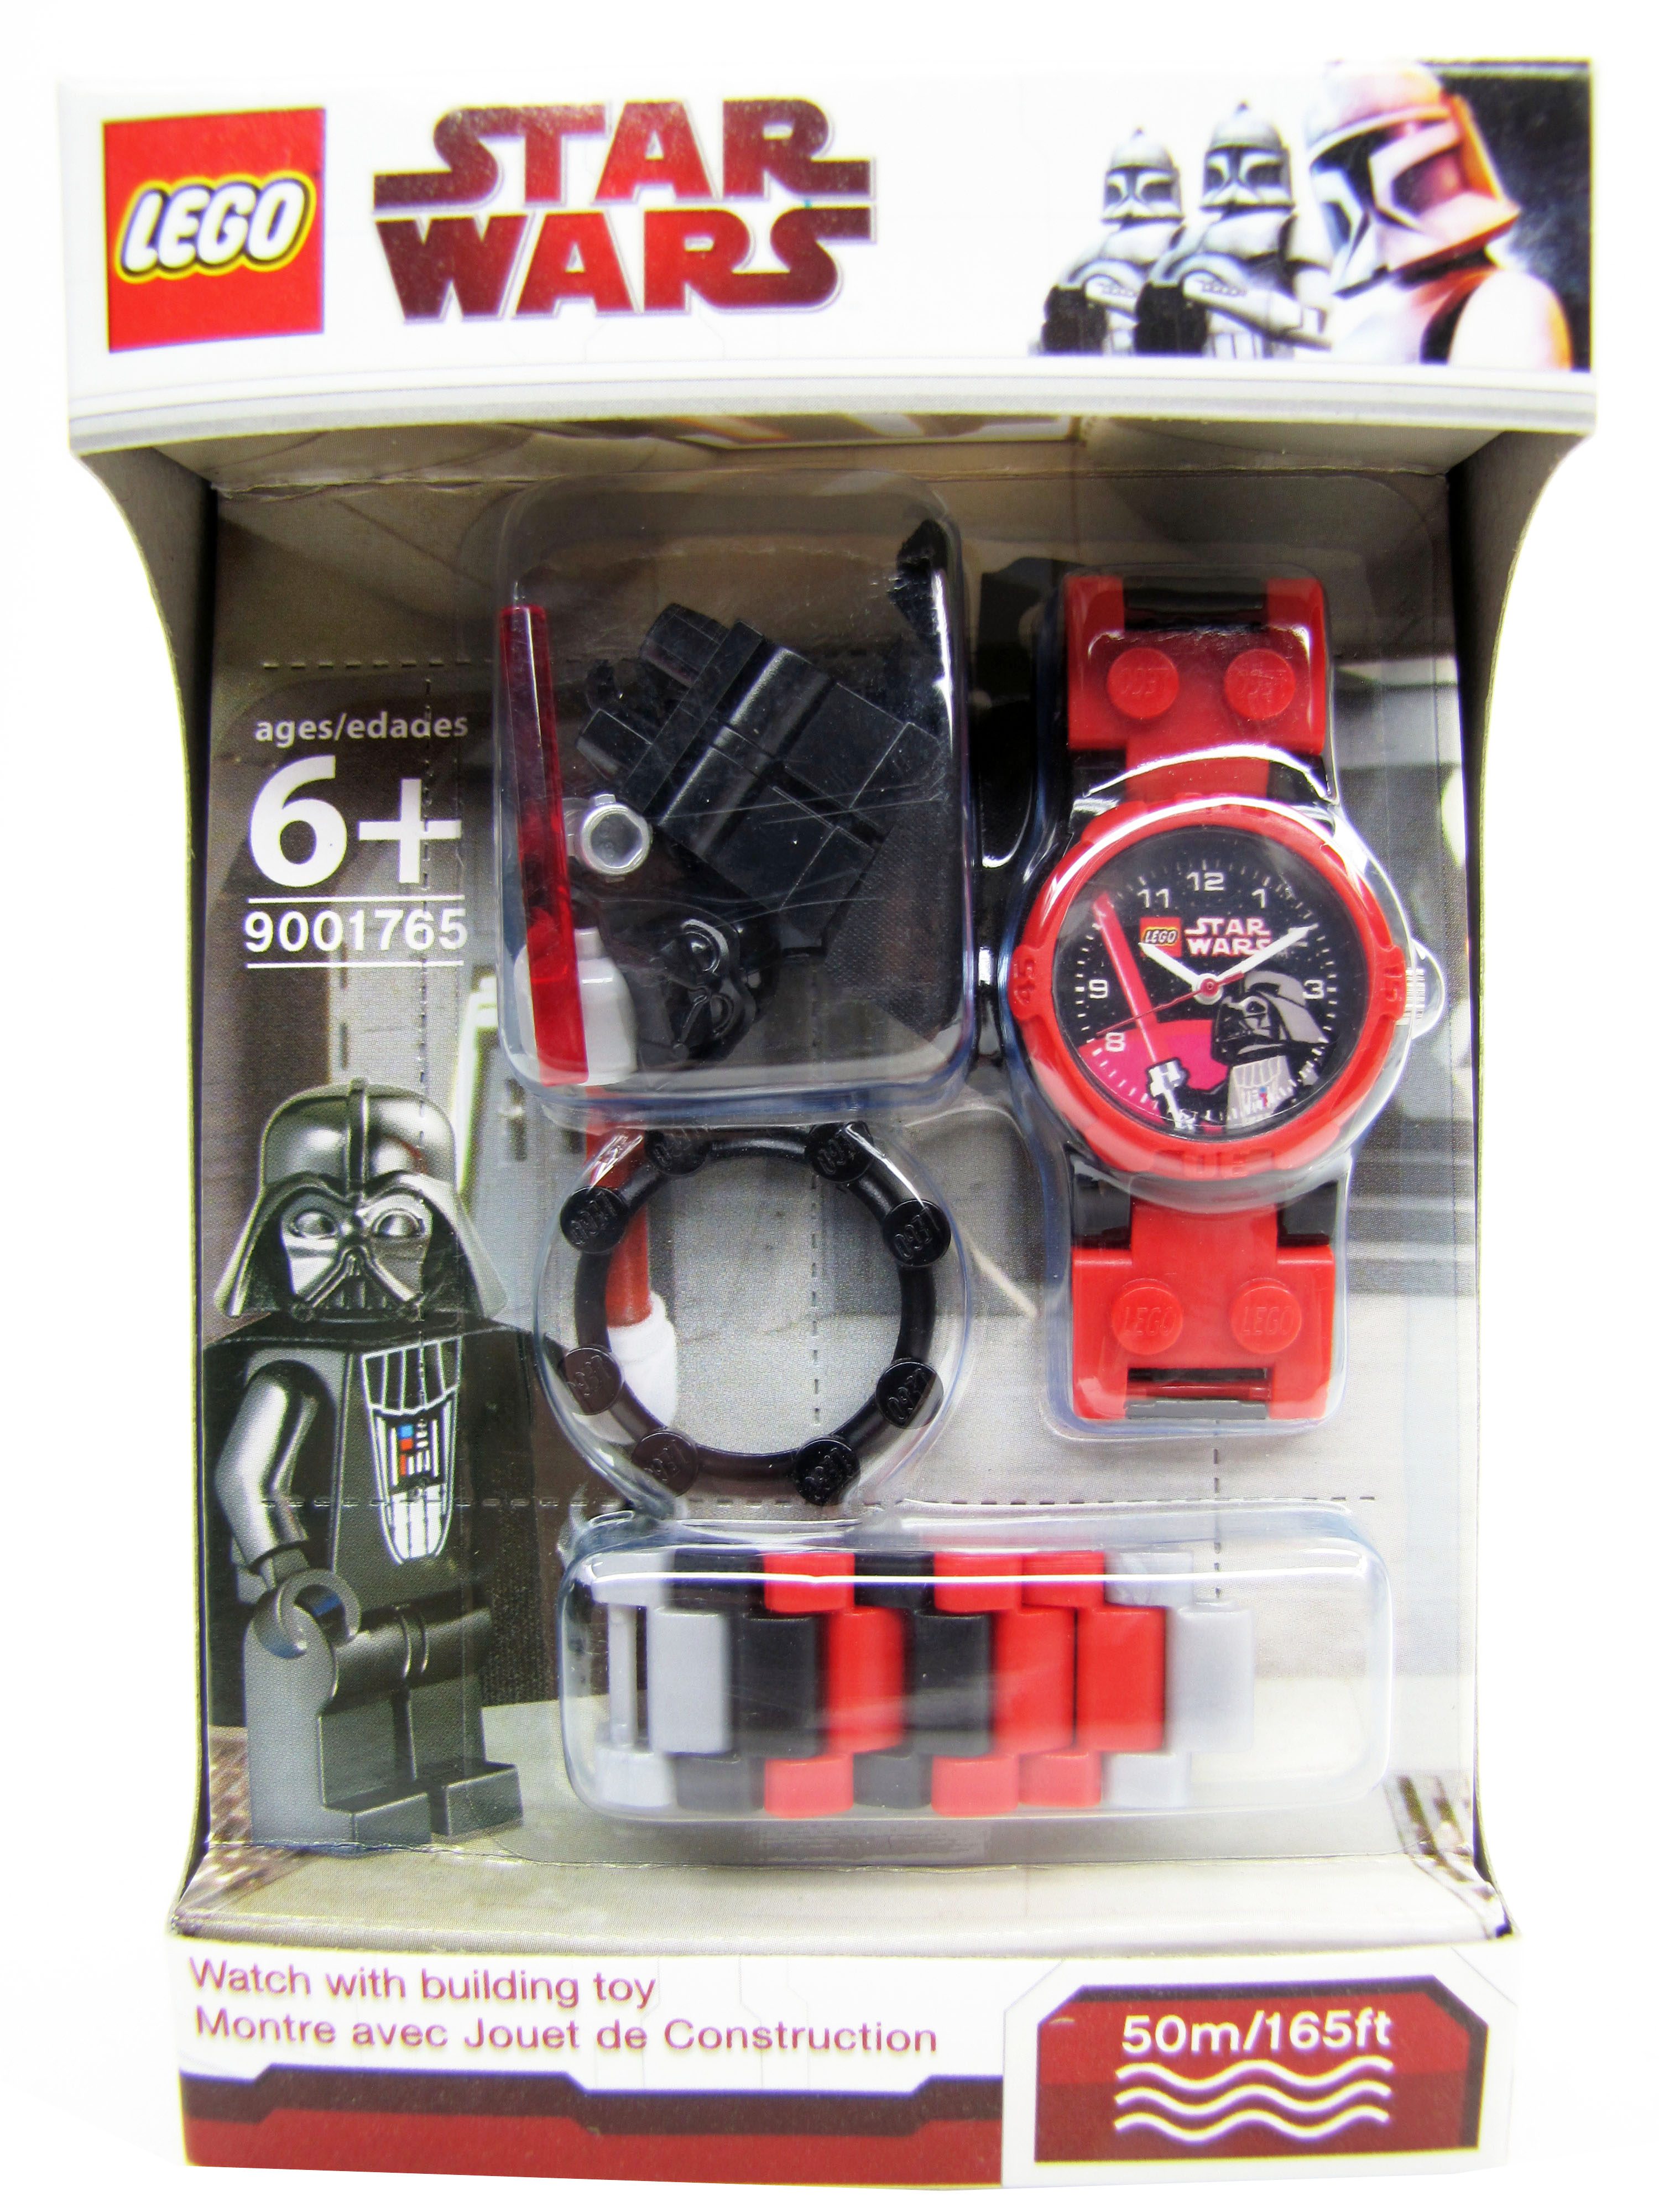 Lego Star Wars Darth Vader Minifigure Watch NEW Lego Time 900175